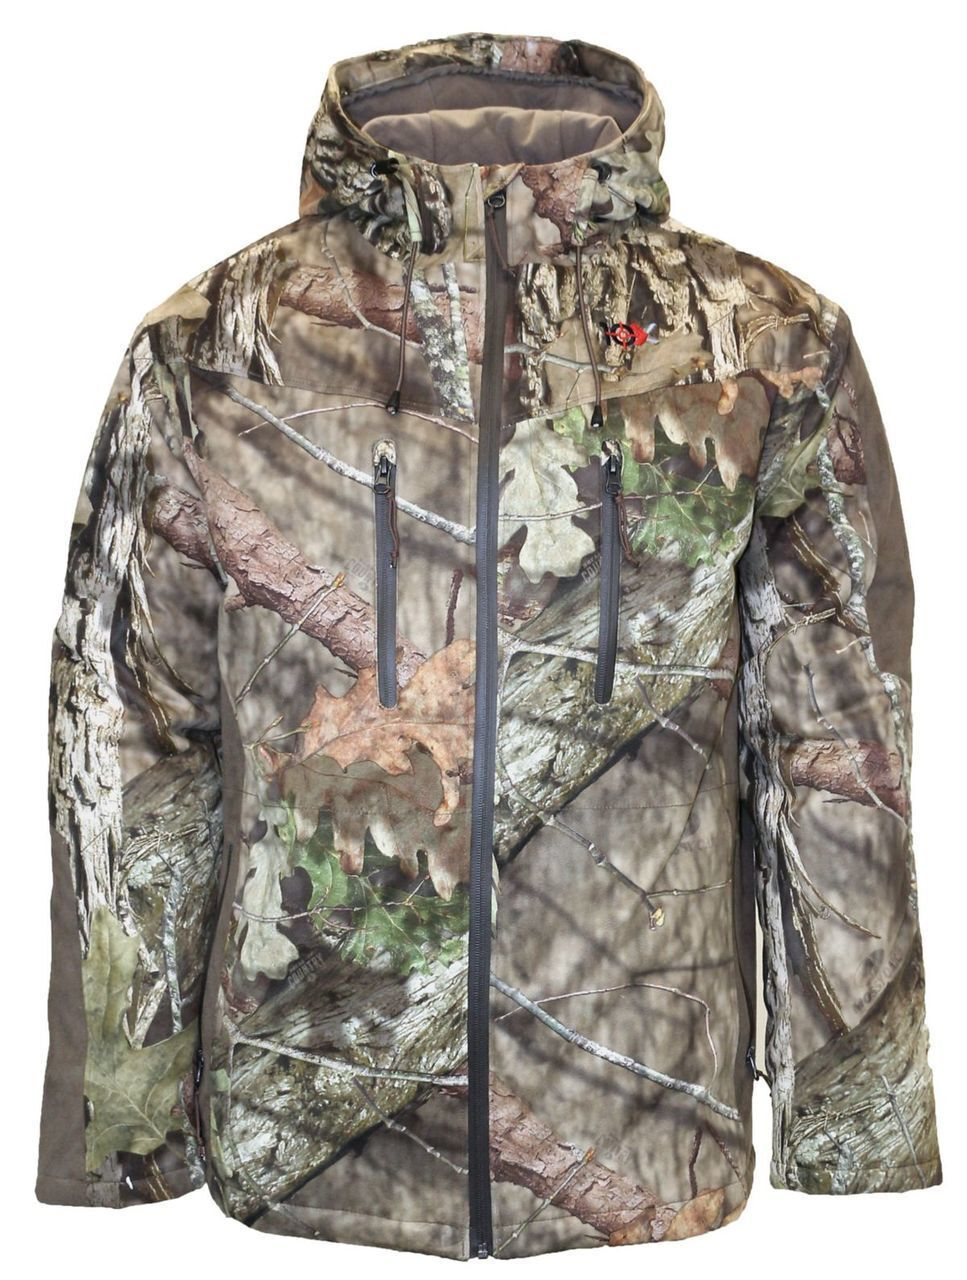 10X Men's Silent Quest Insulated Parka Scentrex Mossy Oak Breakup Country Medium